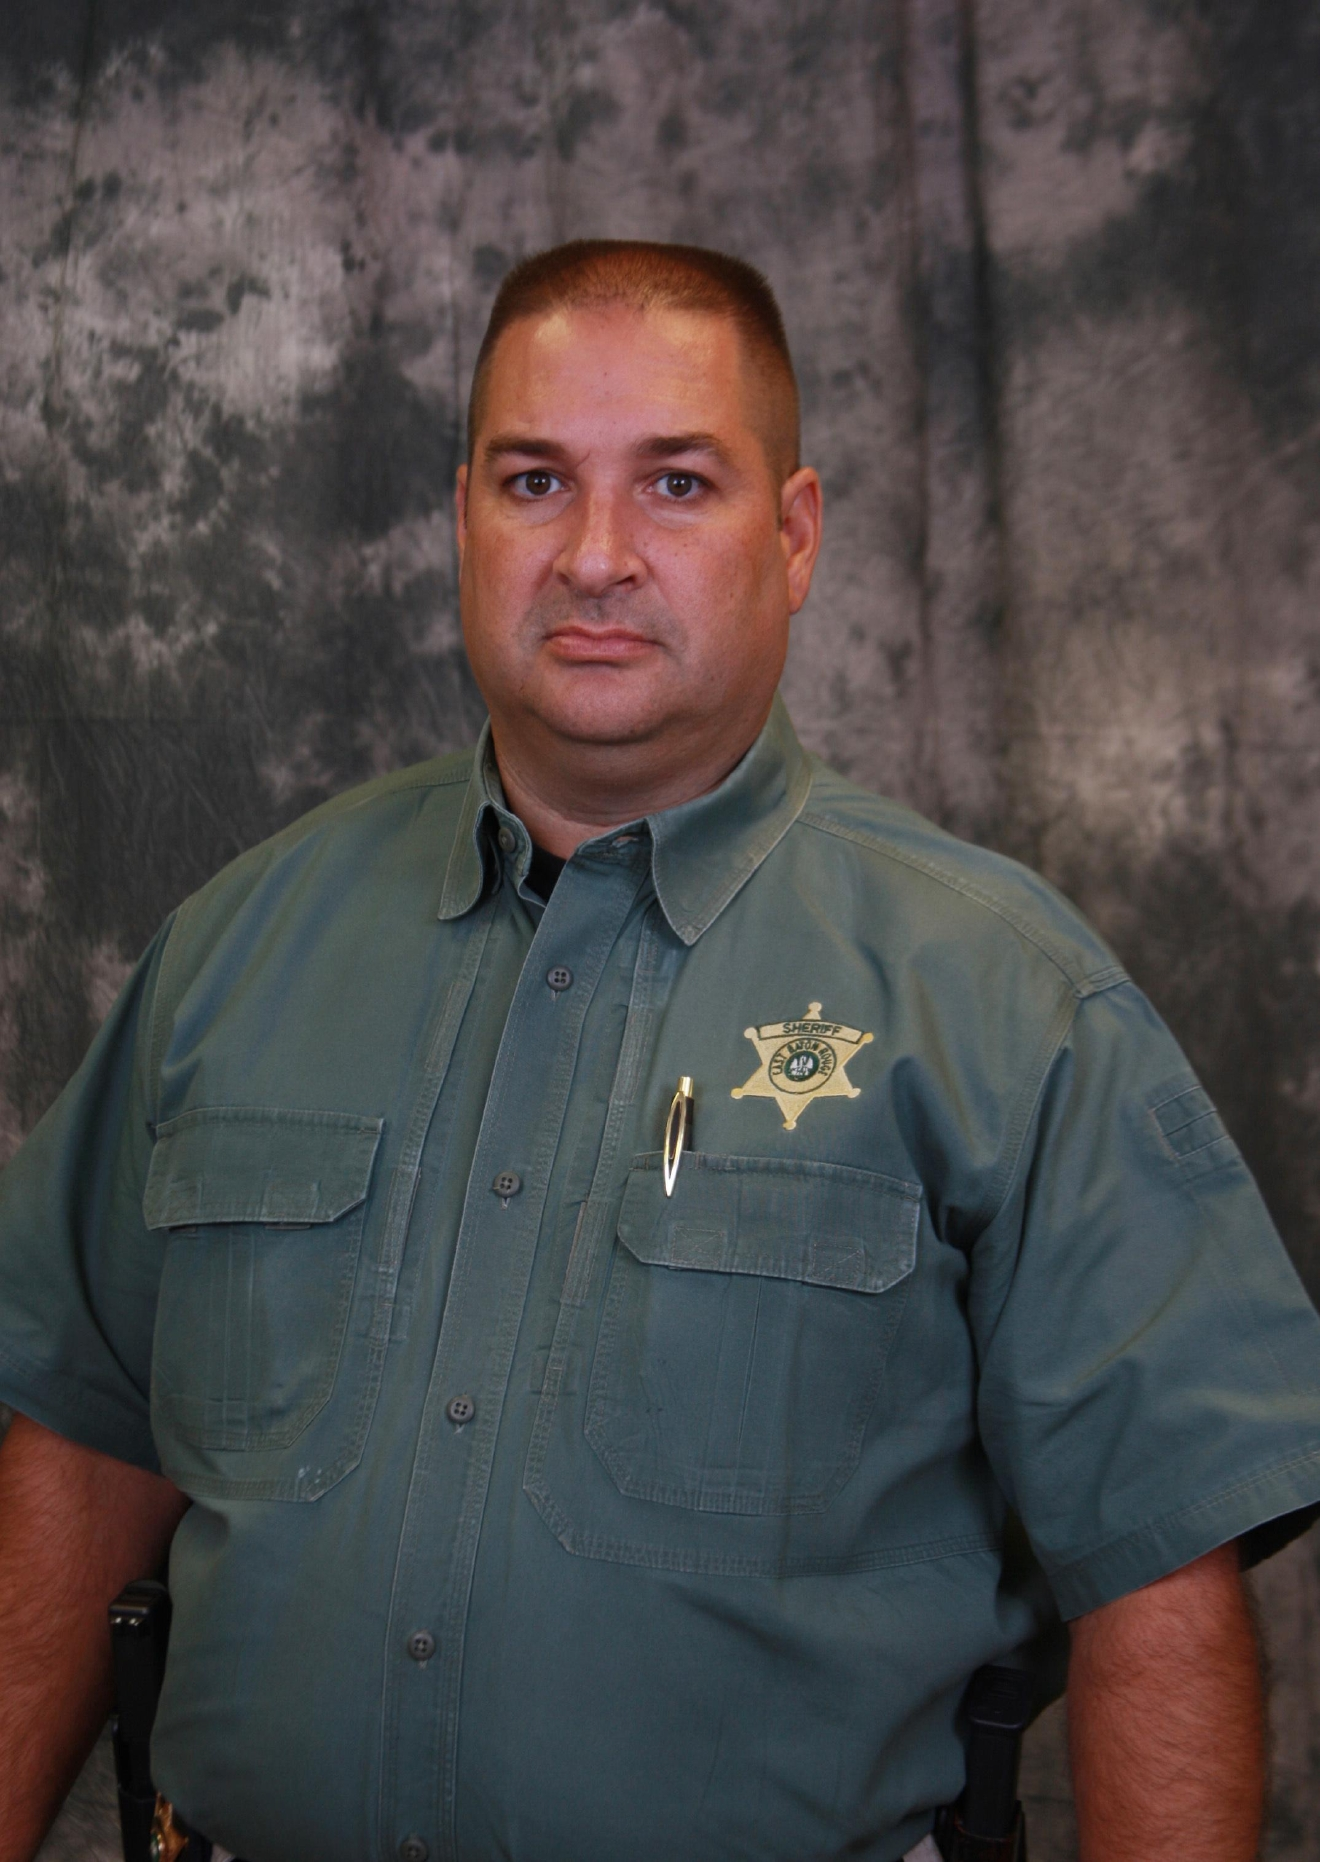 This undated photo made available by the East Baton Rouge Sheriff's Office shows deputy Brad Garafola. Garafola and at least two other Baton Rouge law enforcement officers investigating a report of a man with an assault rifle were killed Sunday, July 17, 2016, less than two weeks after a black man was fatally shot by police here in a confrontation that sparked nightly protests that reverberated nationwide. (East Baton Rouge Sheriff's Office via AP)